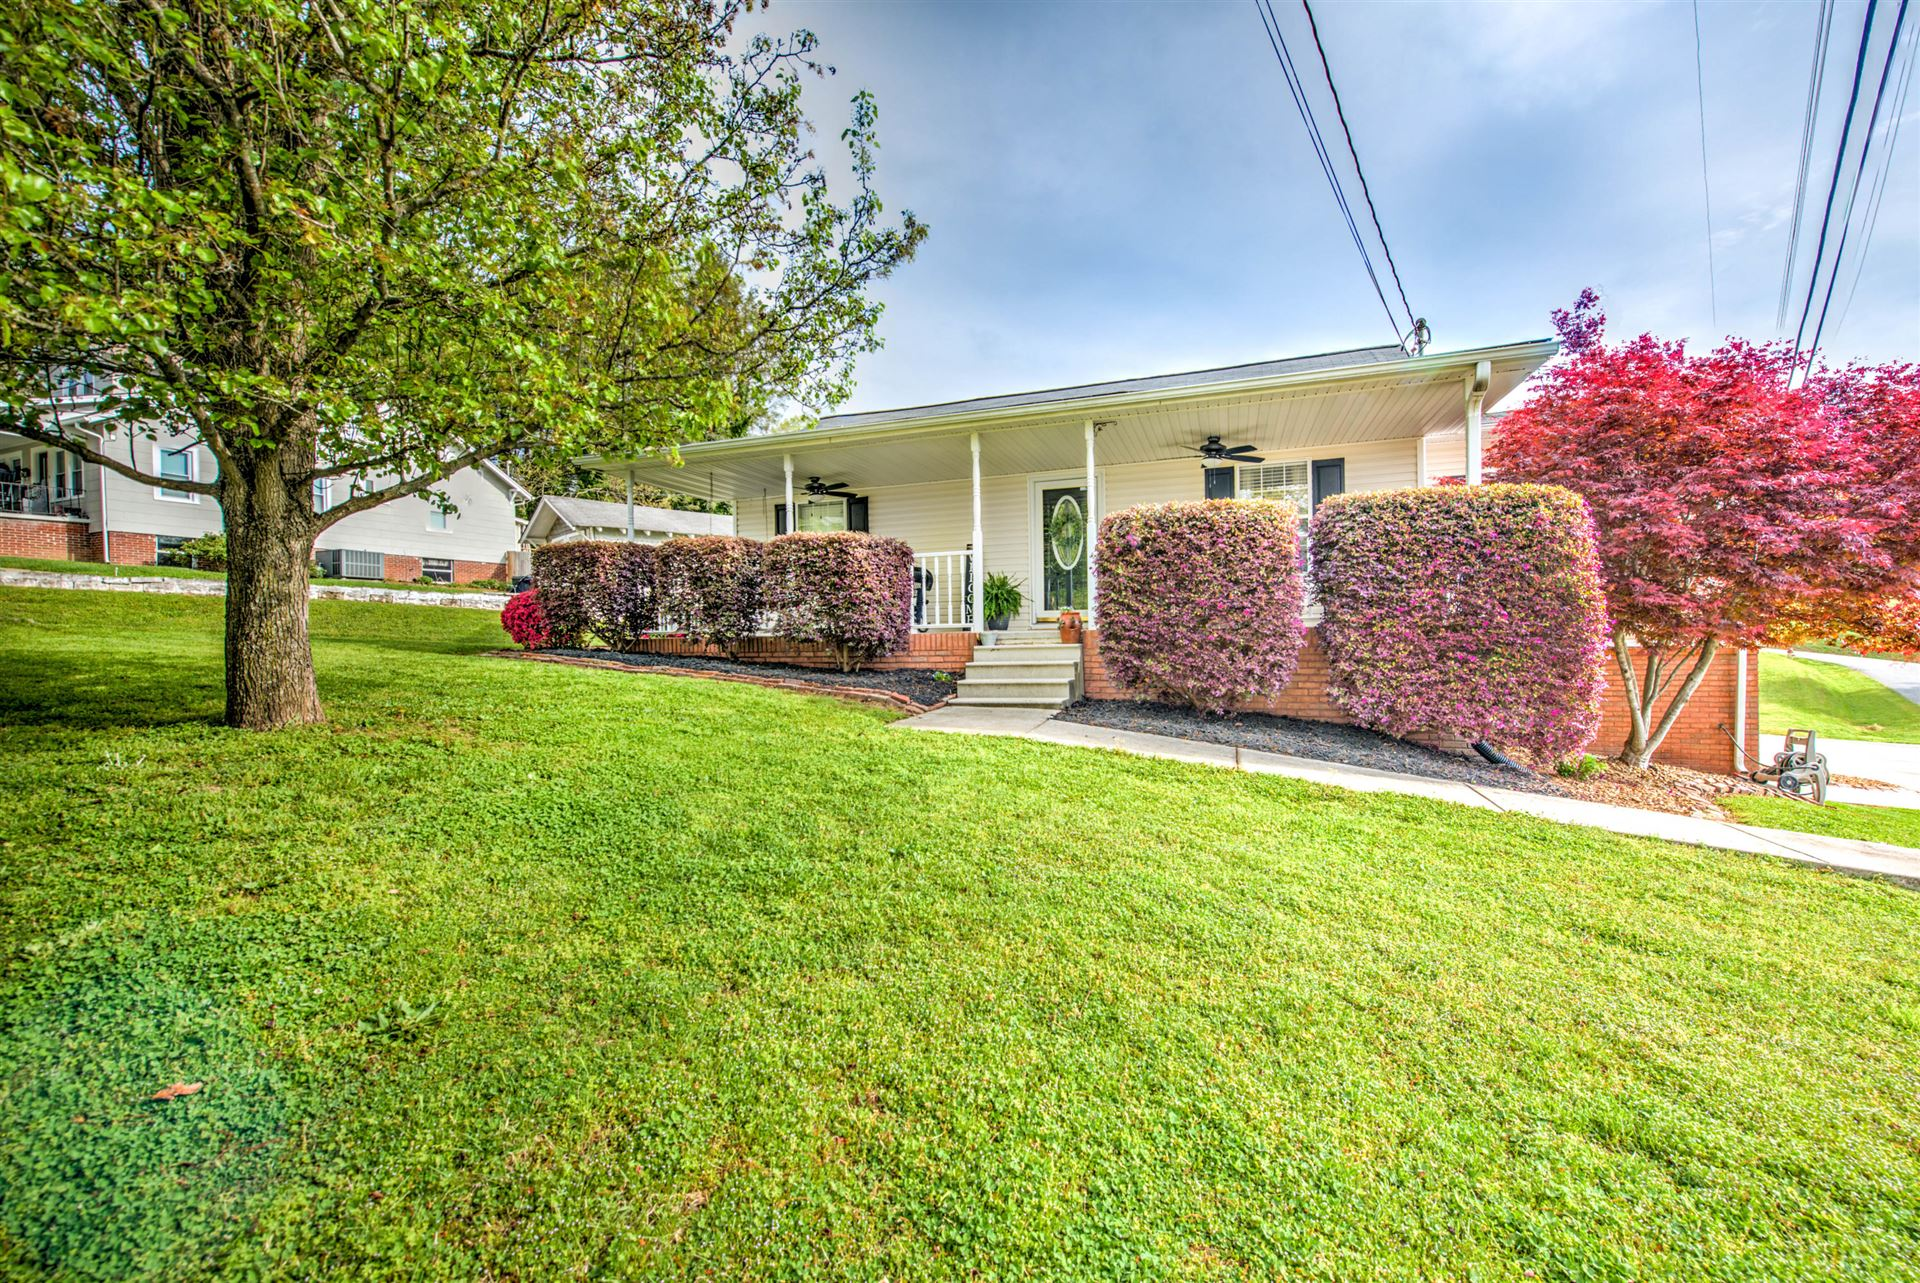 Photo of 403 Central St, Clinton, TN 37716 (MLS # 1149327)